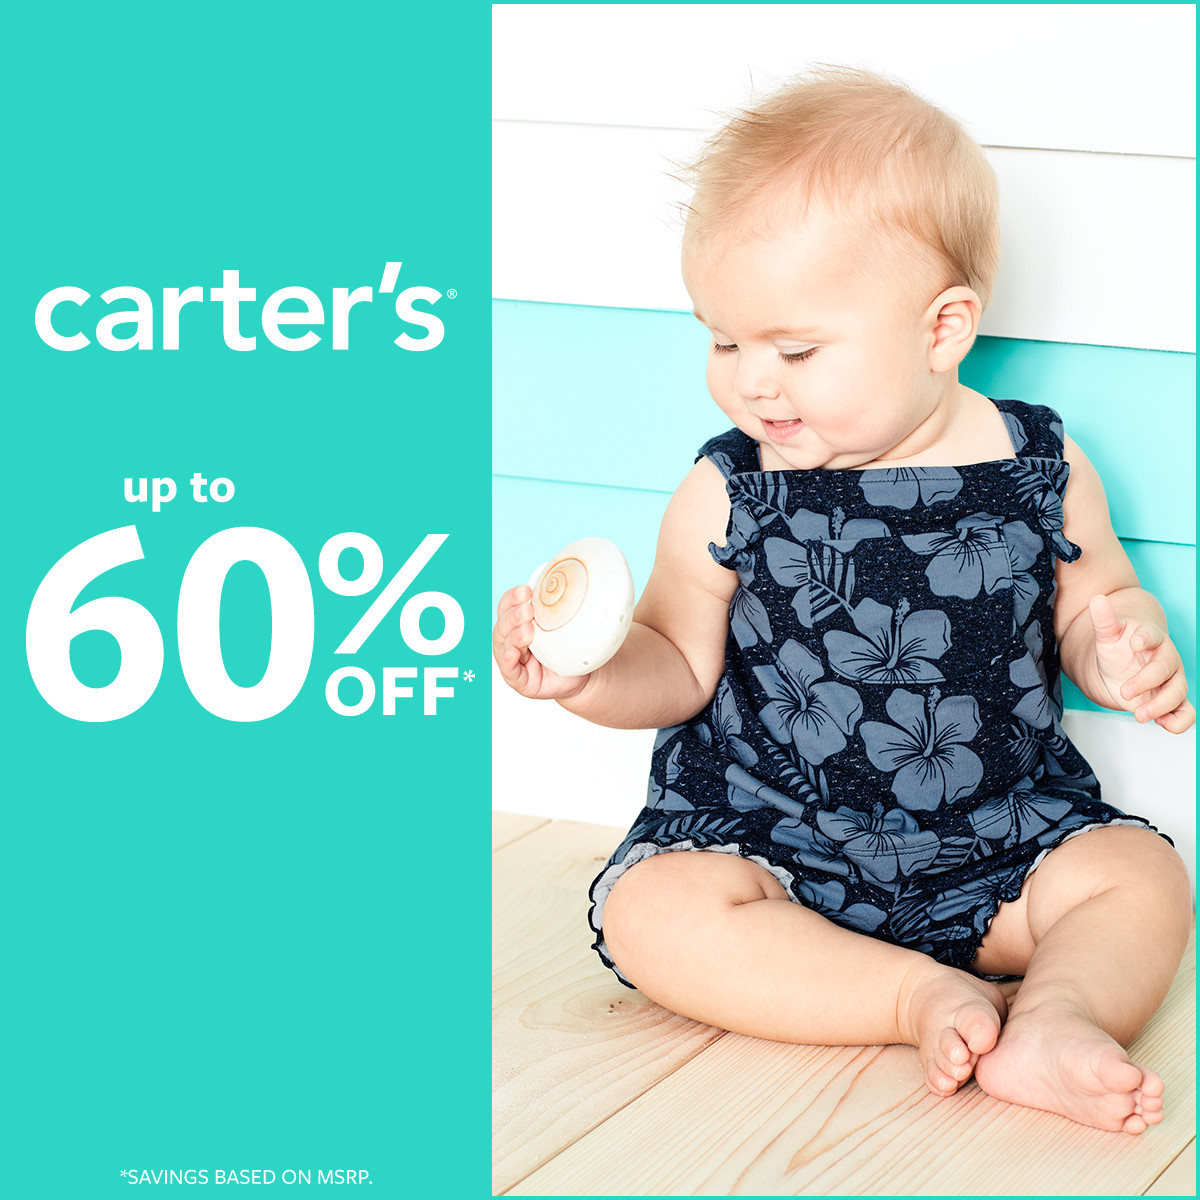 Up To 60% Off*! at Carter's